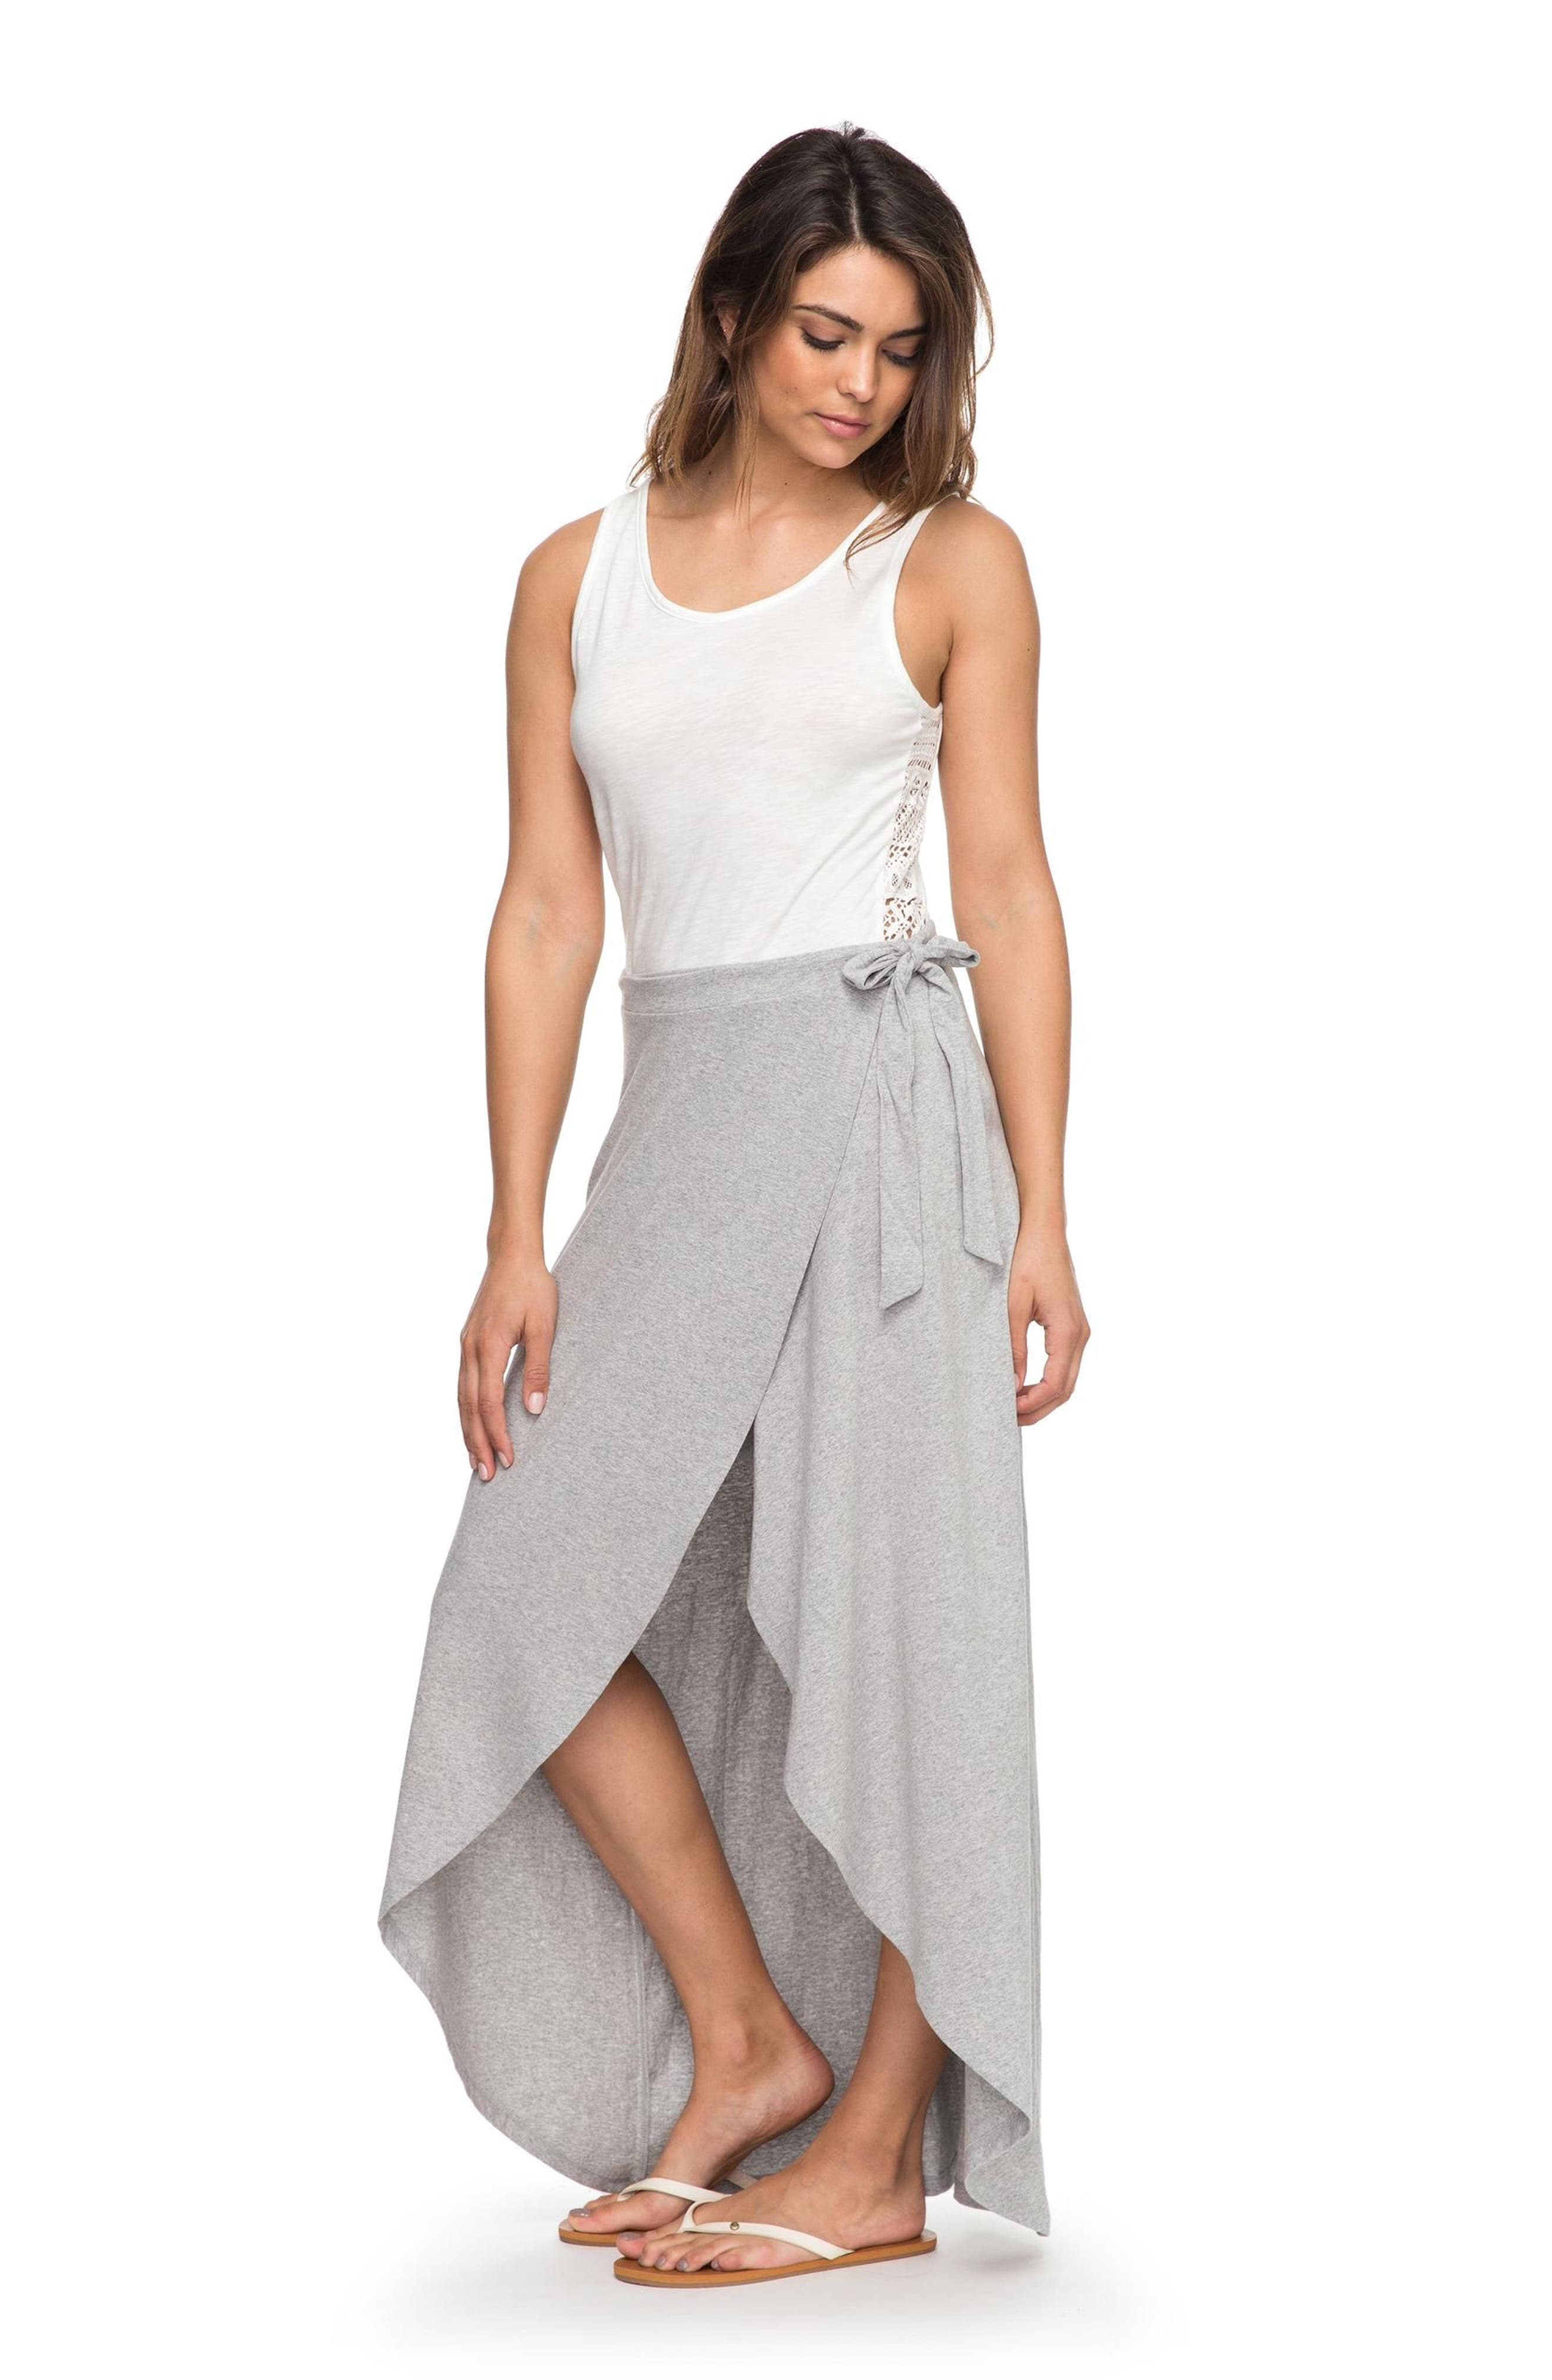 Everlasting Afternoon Long Wrap Skirt,                             Alternate thumbnail 5, color,